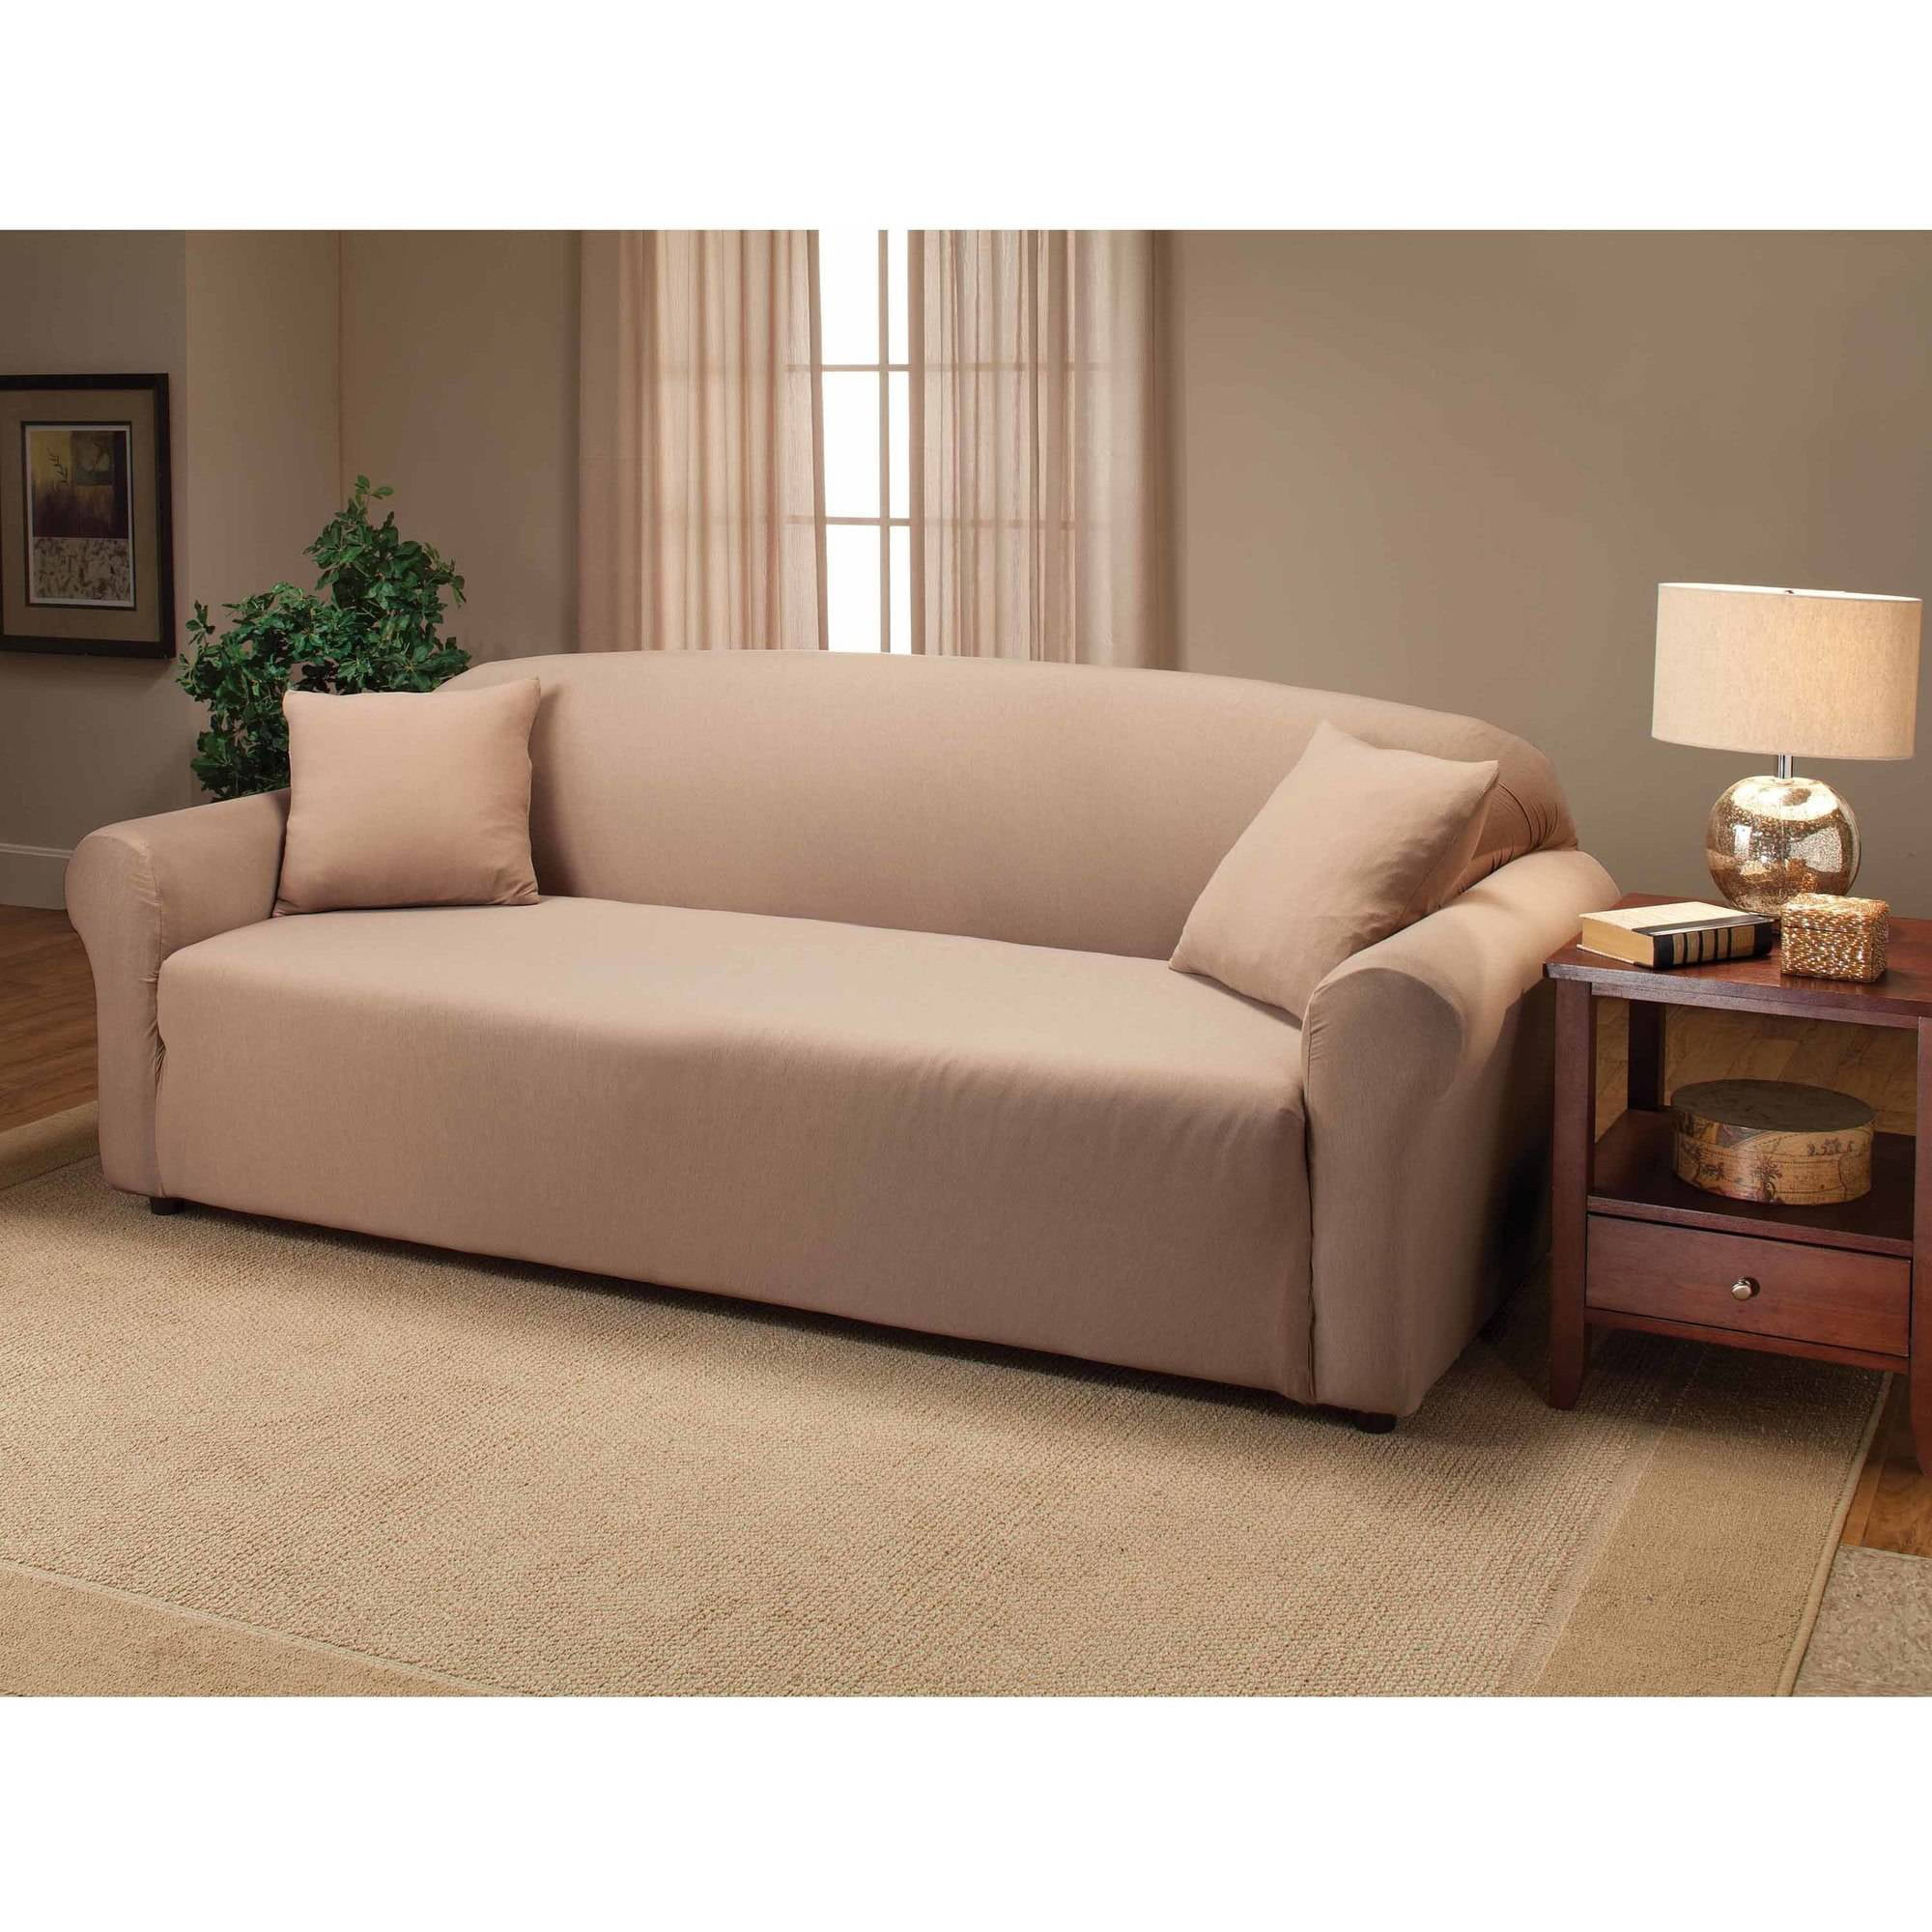 Better homes and gardens one piece stretch fine corduroy - Fundas de sillones baratas ...